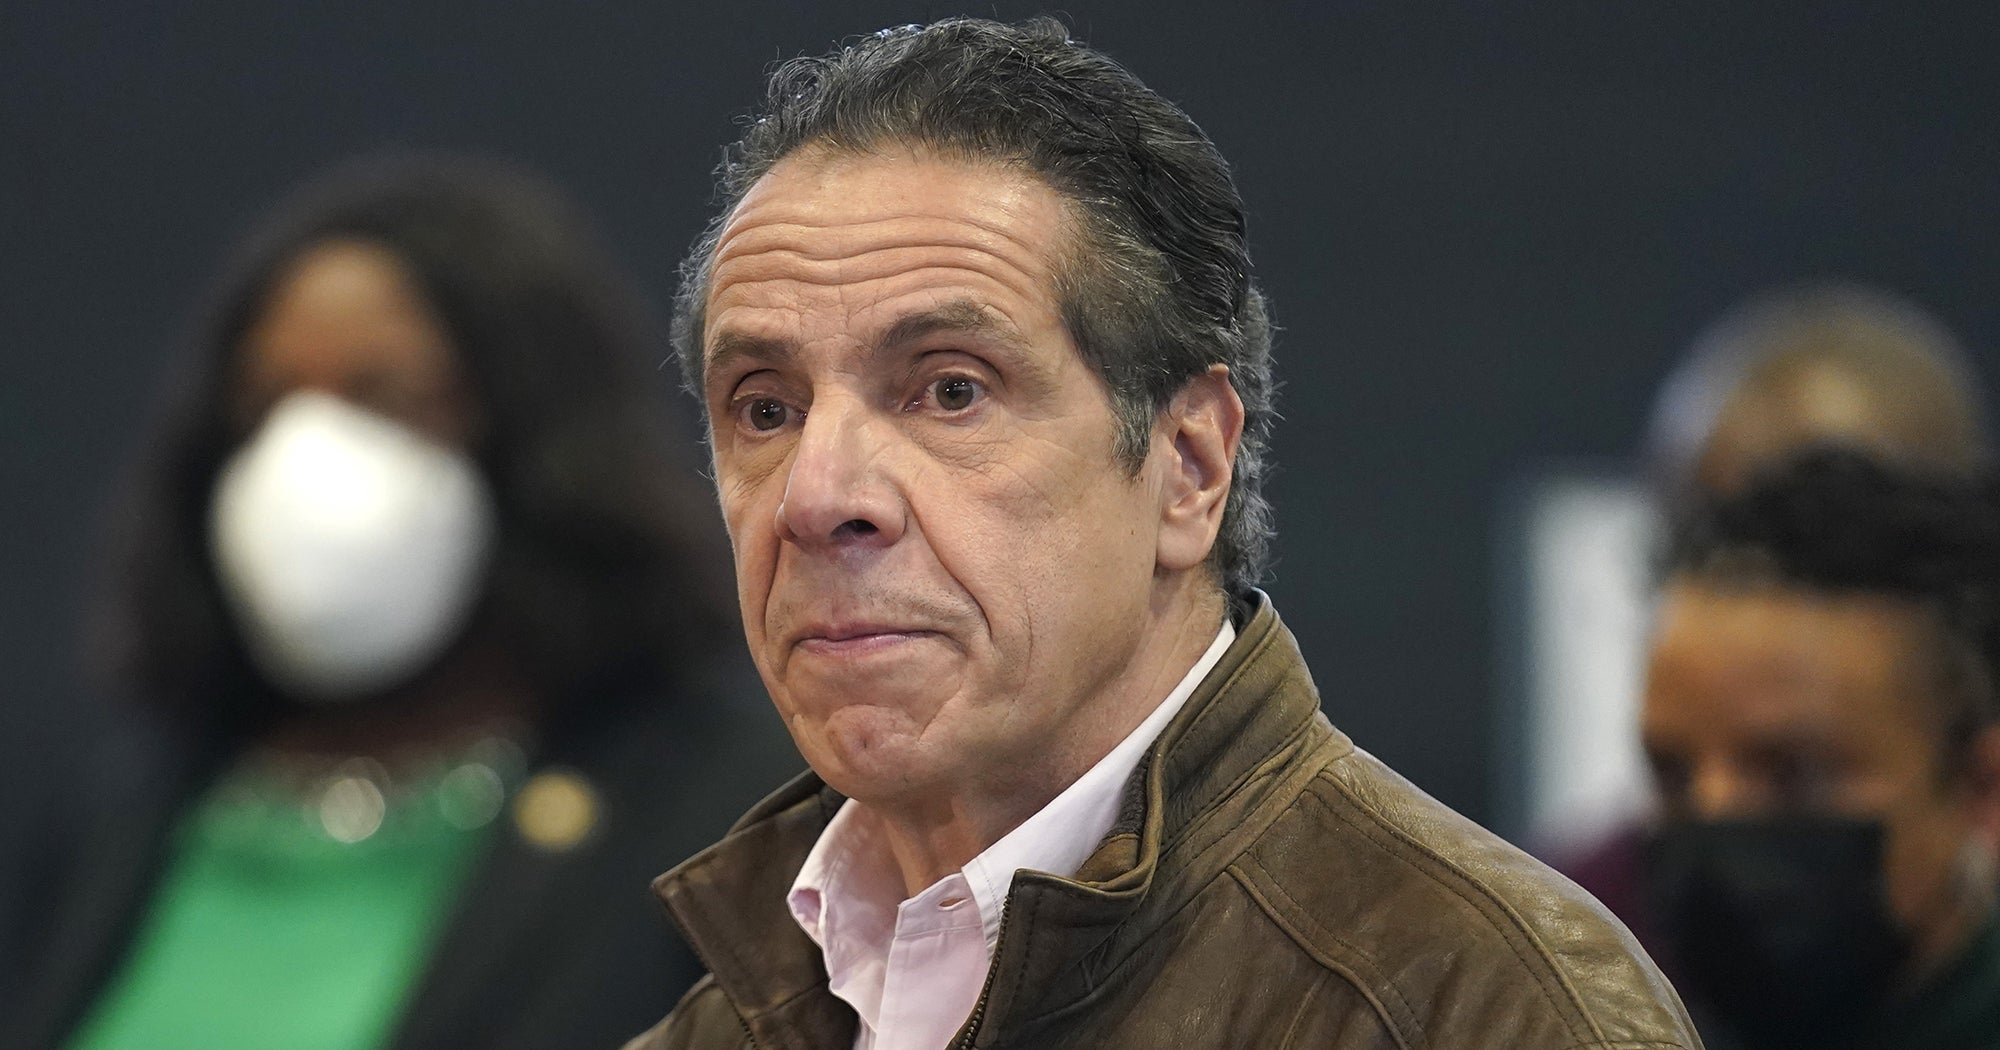 www.refinery29.com: Former Aide Lindsey Boylan Wrote A Detailed Essay Accusing Gov. Cuomo Of Sexual Harassment